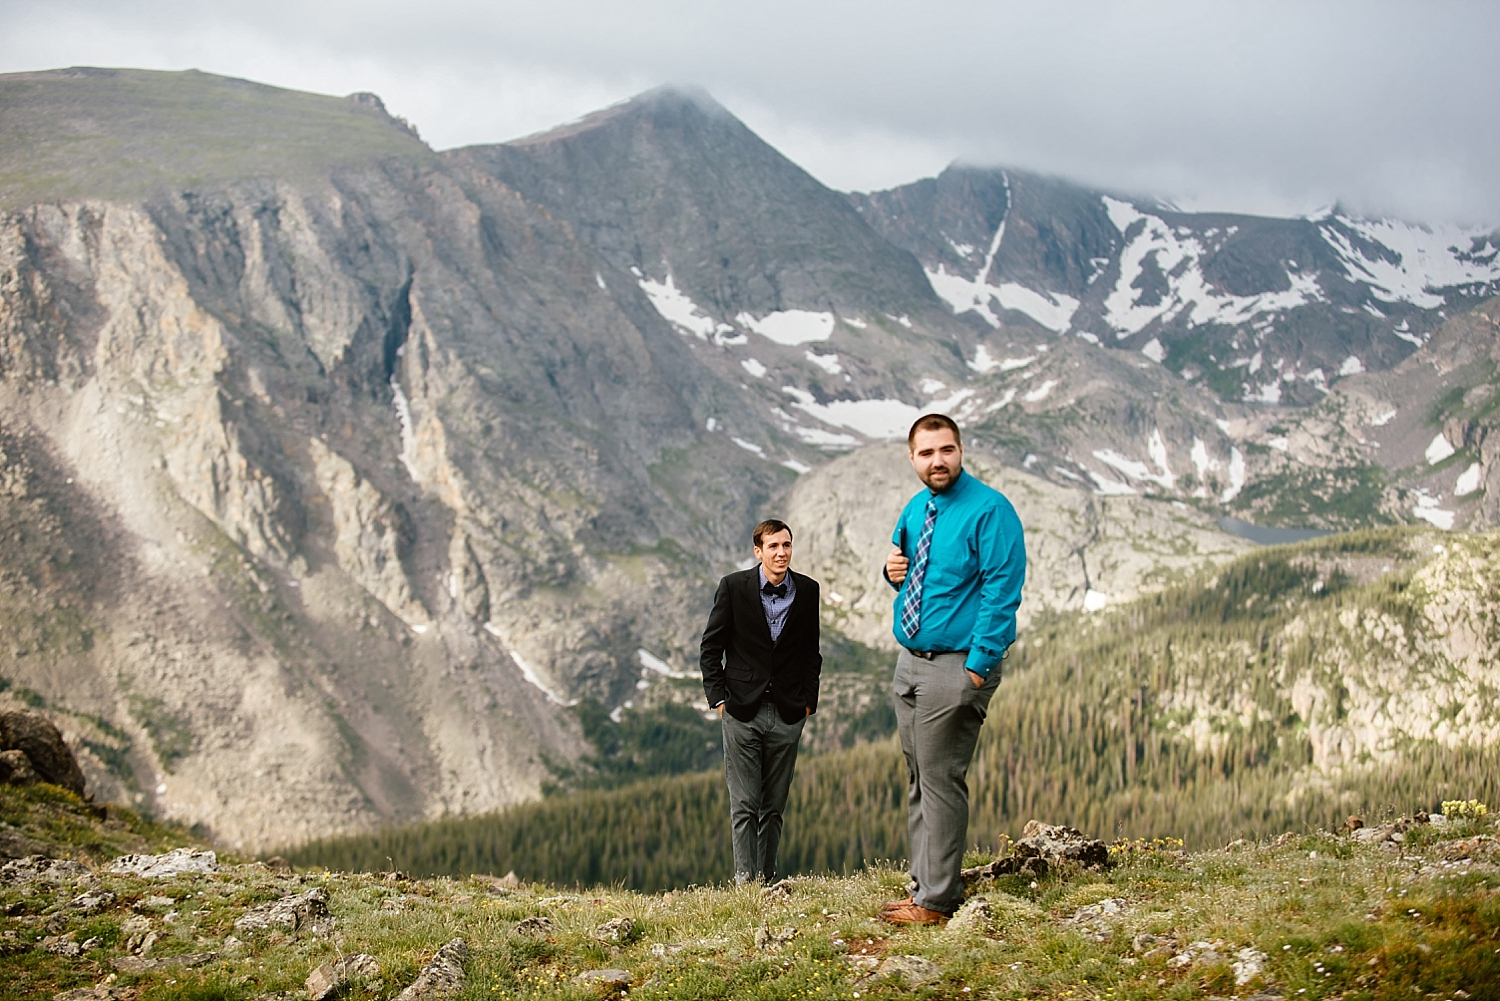 The view of the Rocky Mountains at this intimate mountain elopement is breathtaking! I can't get enough of these Estes Park weddings in Rocky Mountain National Park! | Mountain elopement photos by Trail Ridge Road wedding photographer, Maddie Mae.